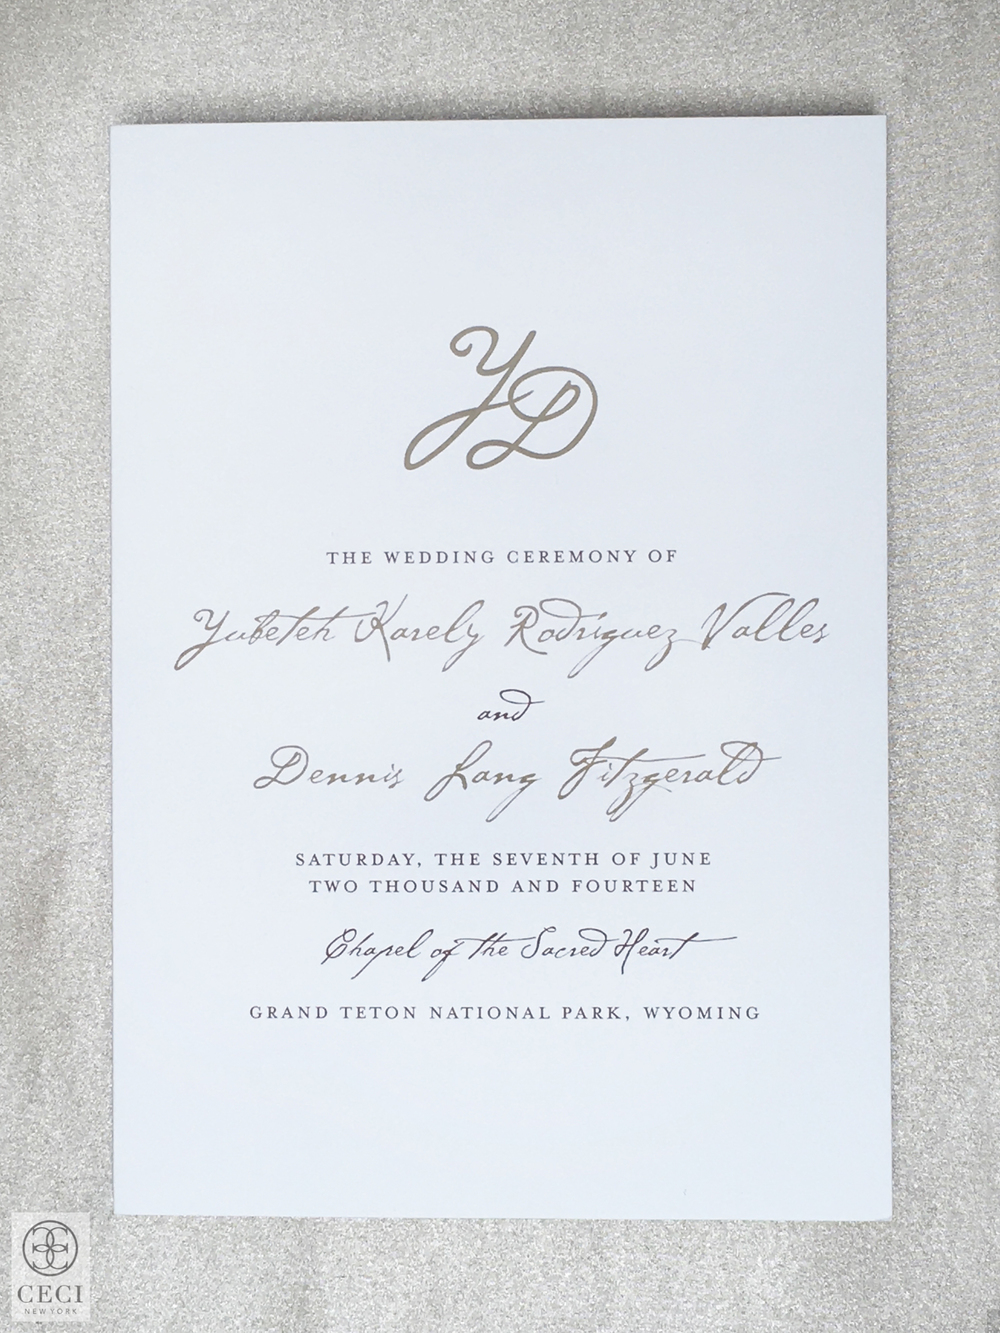 Ceci_New_York_Lyndsey_Hamilton_Events_Invitations_Wedding_Amangani_Elegance_Gold_Foil_Letterpress_Classic_Stamping_Custom_Couture_Personalized-19.jpg